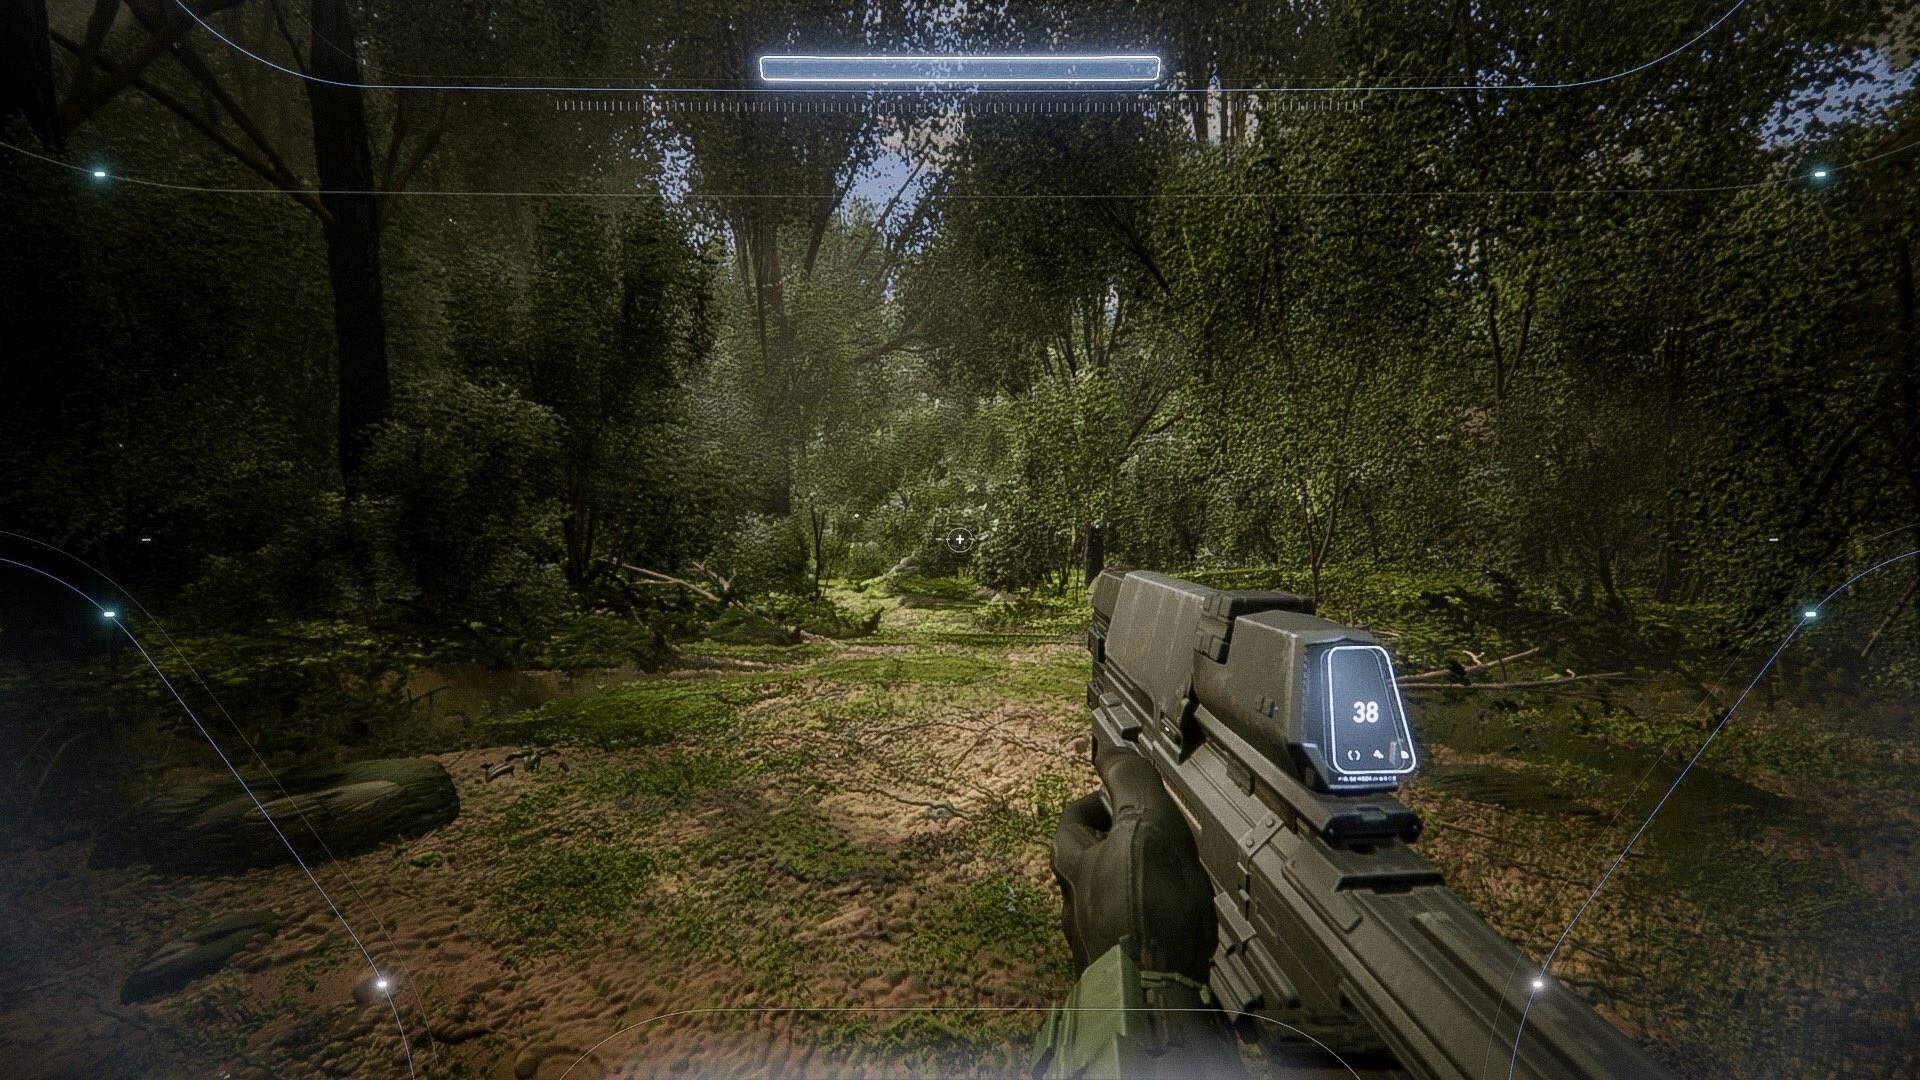 Halo, Made in Dreams on PlayStation 4, Looks Quite Impressive